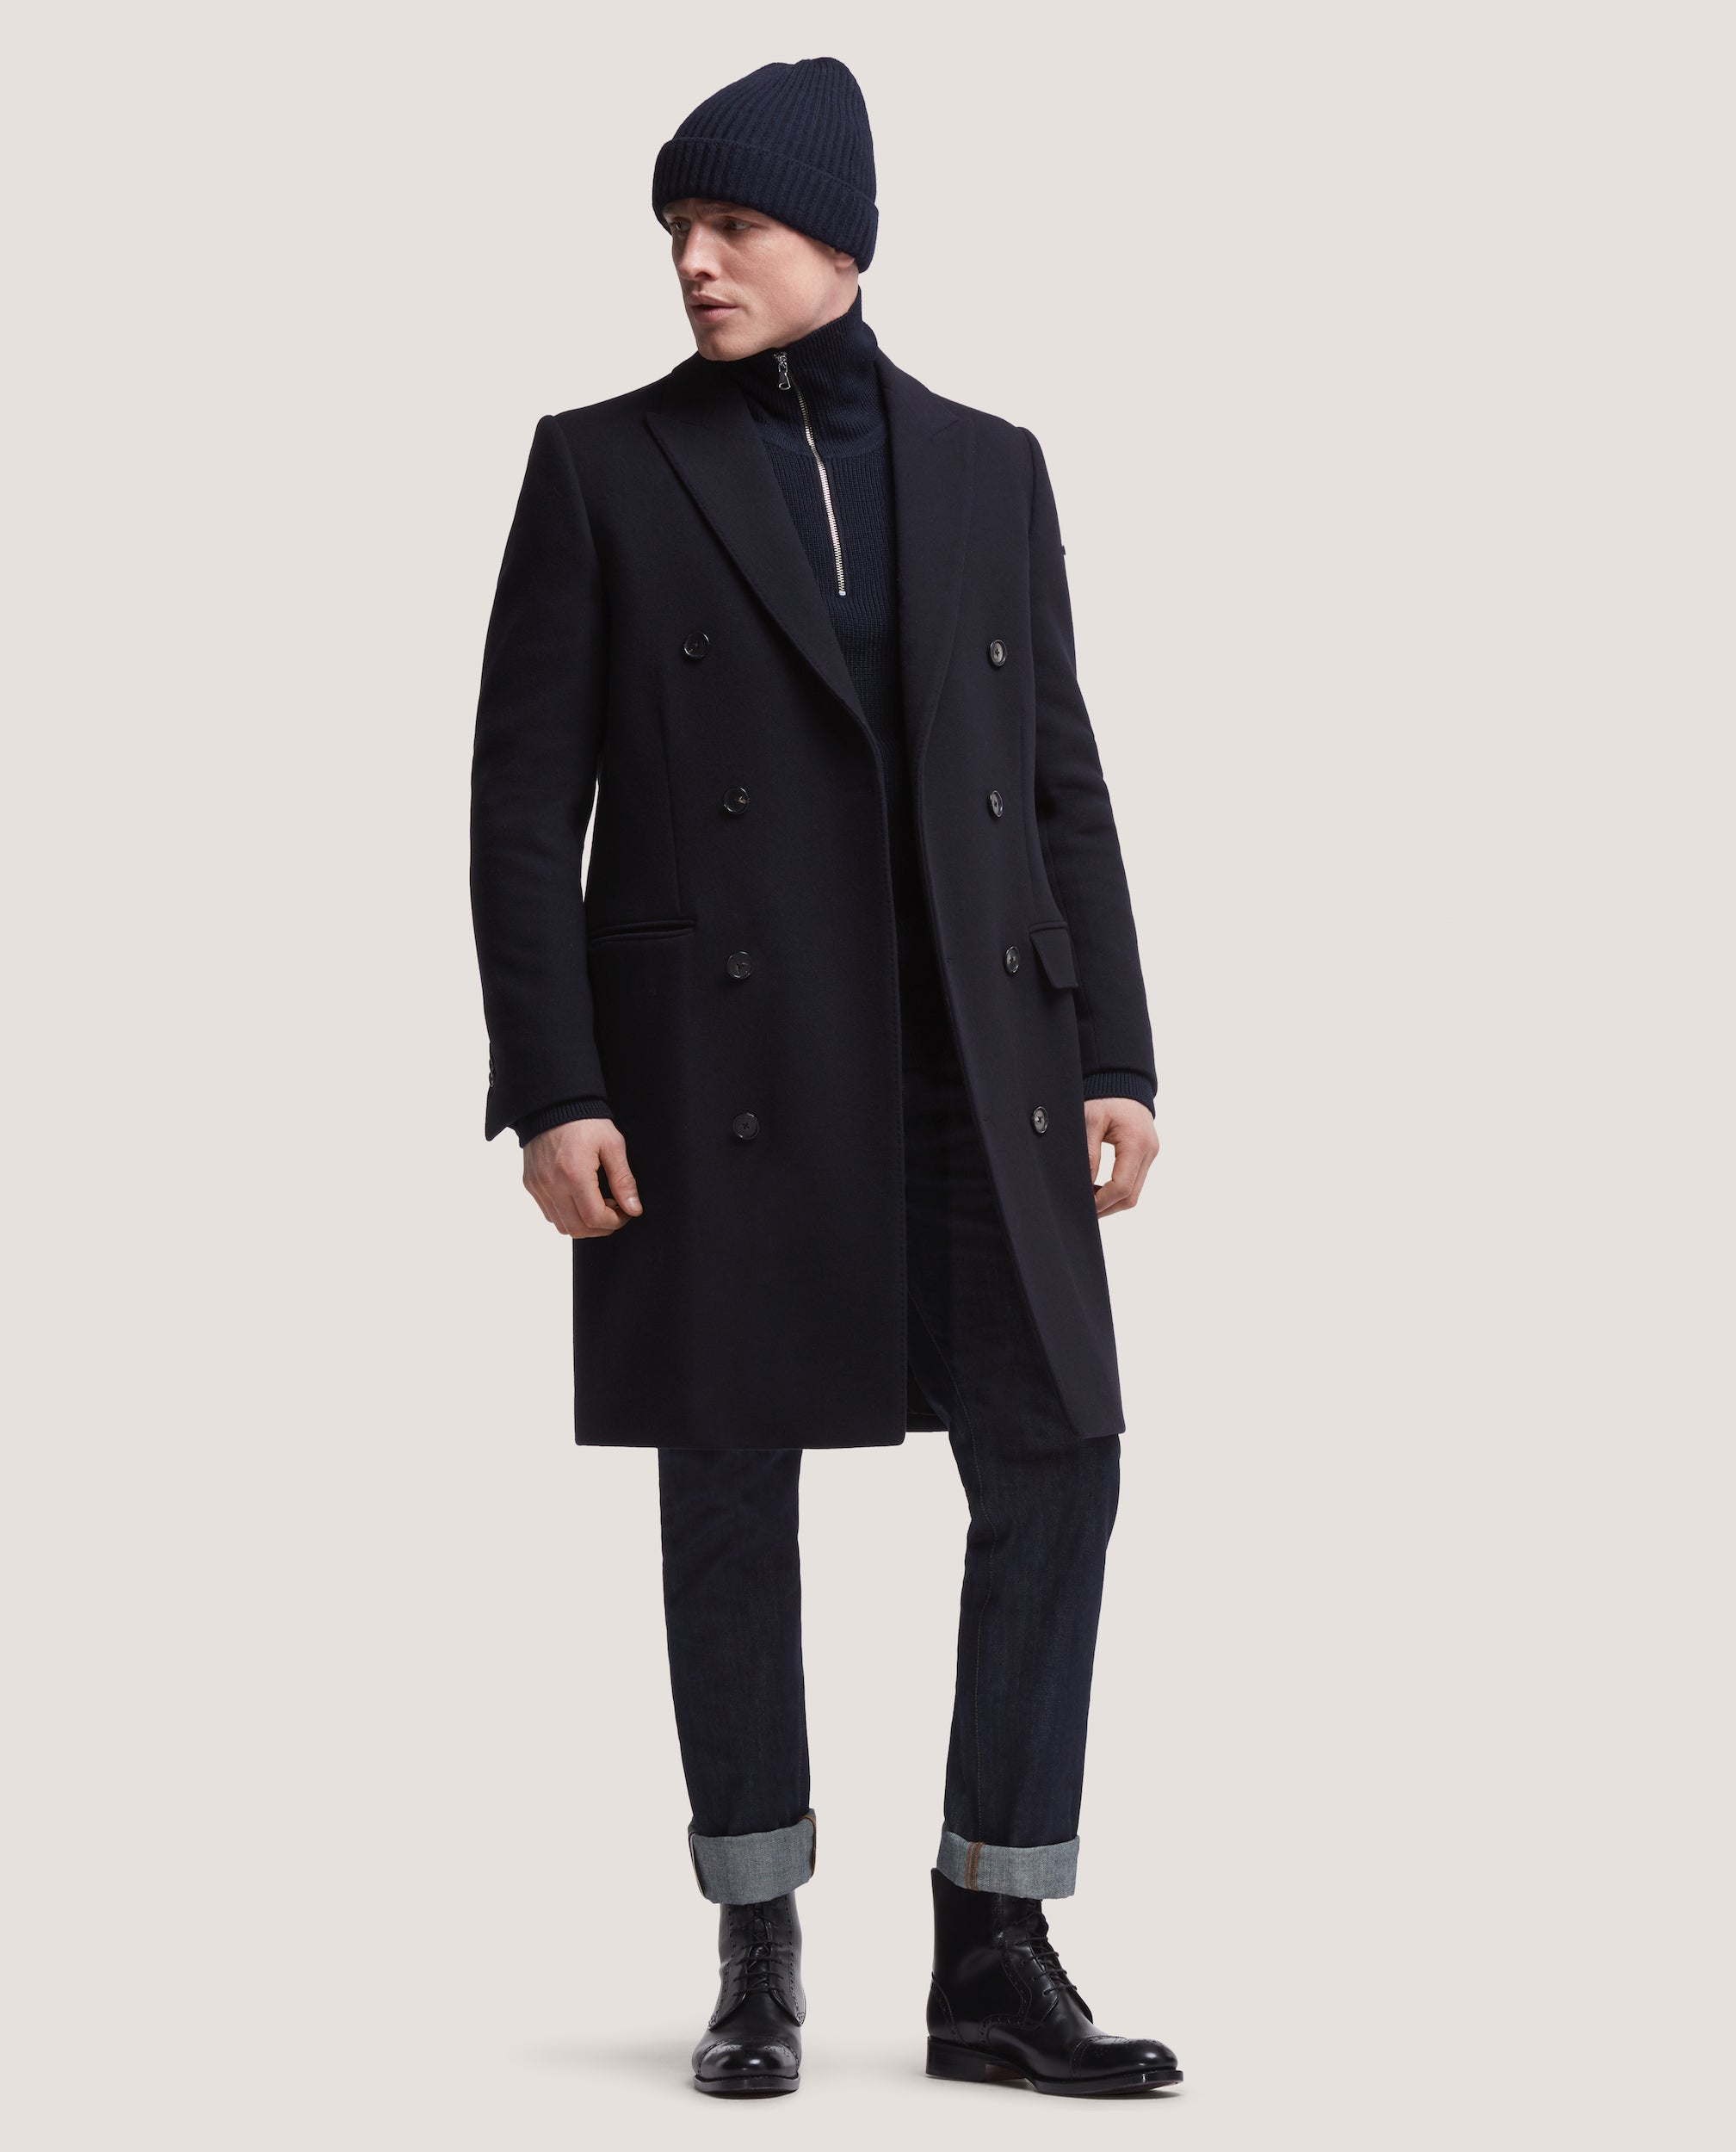 daed9b3fca1 IVES Double breasted wool overcoat